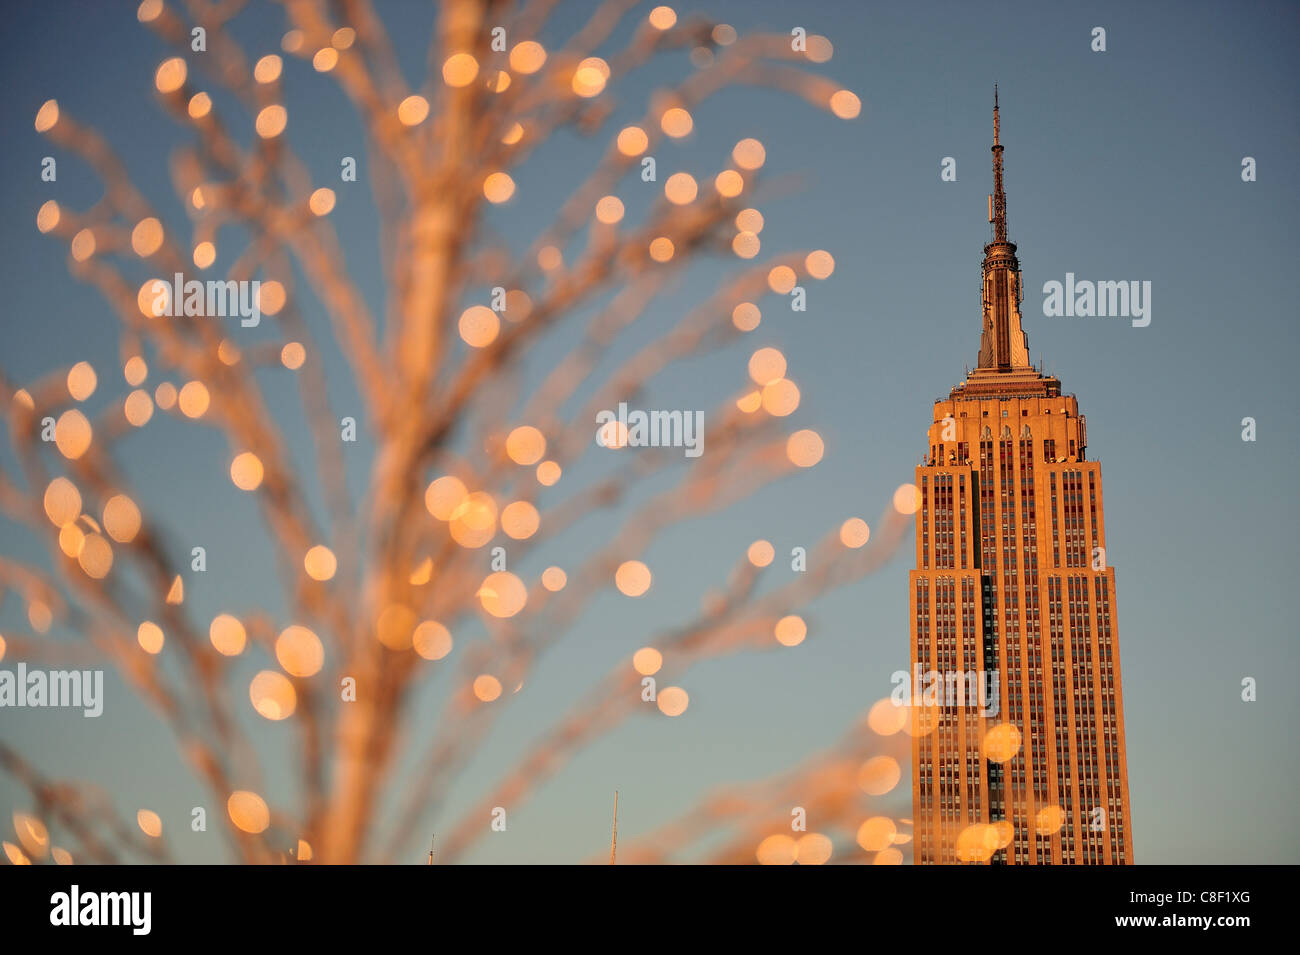 Noël, décoration, Empire State Building, Manhattan, New York, USA, United States, Amérique, Photo Stock